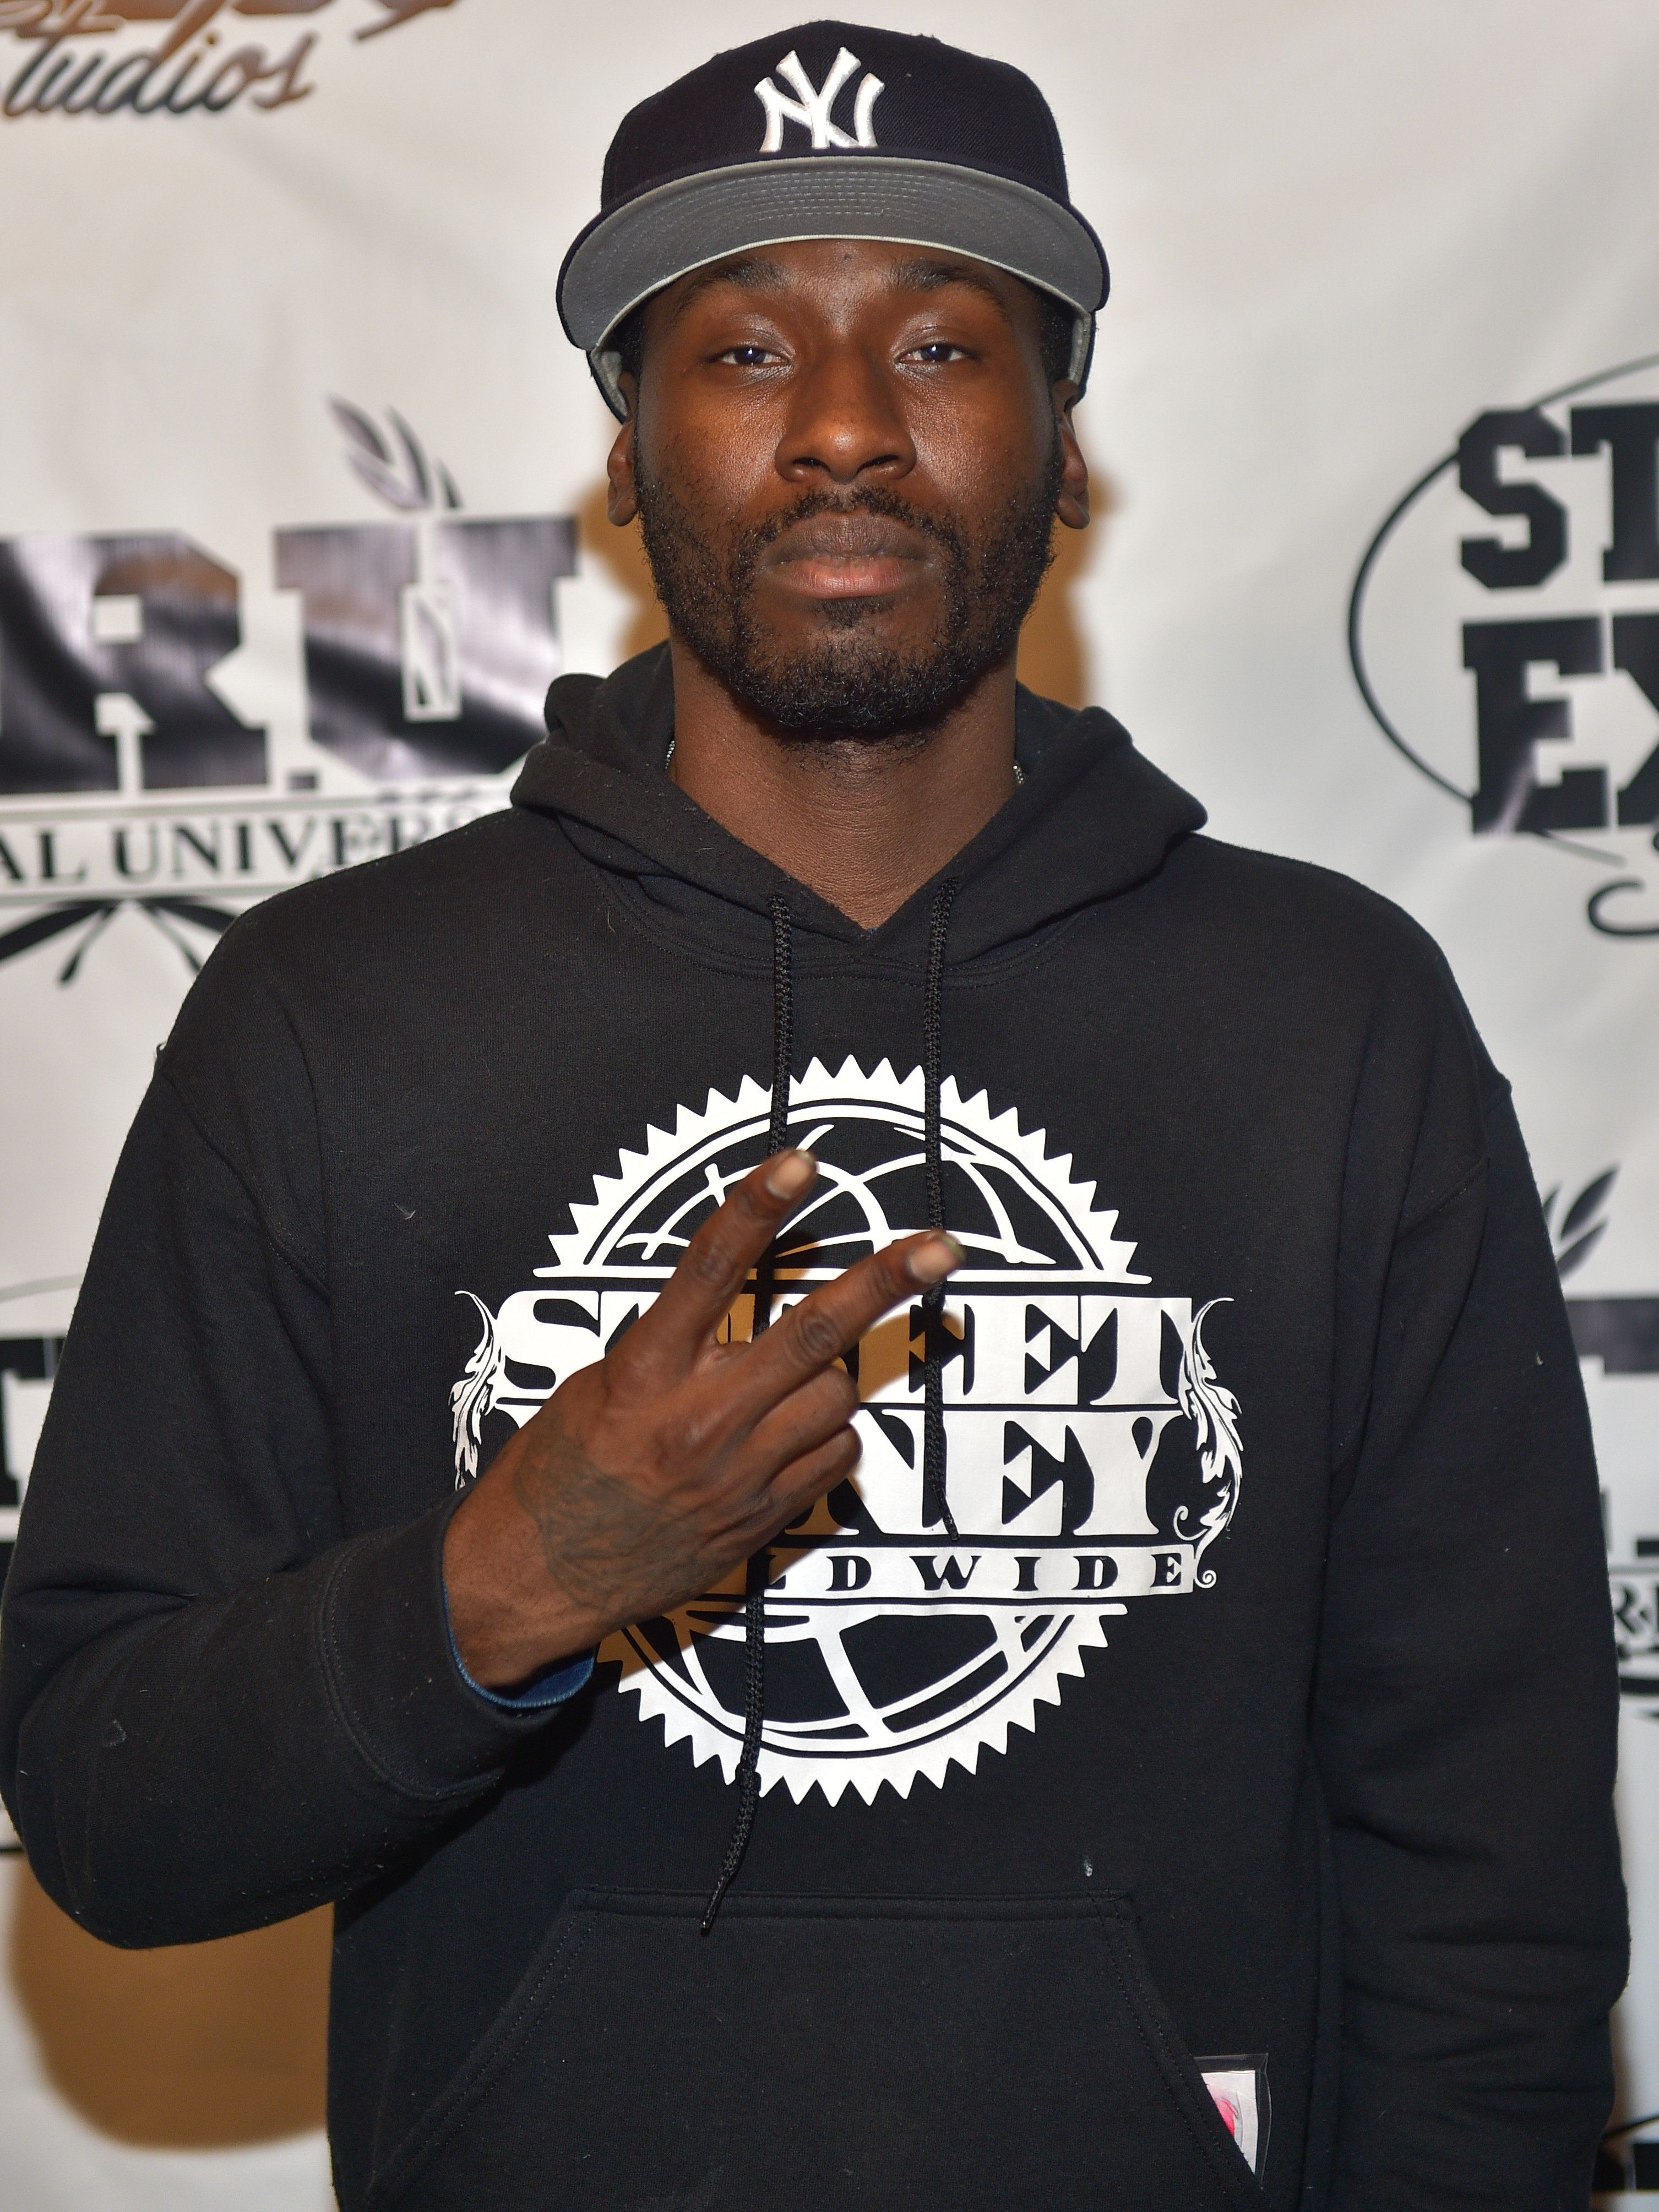 ATLANTA, GA - FEBRUARY 18:  Rapper Bankroll Fresh attends Street Execs studio unveiling and TRU Records introduction at Street Execs Studios on February 18, 2015 in Atlanta, Georgia.  (Photo by Prince Williams/WireImage)